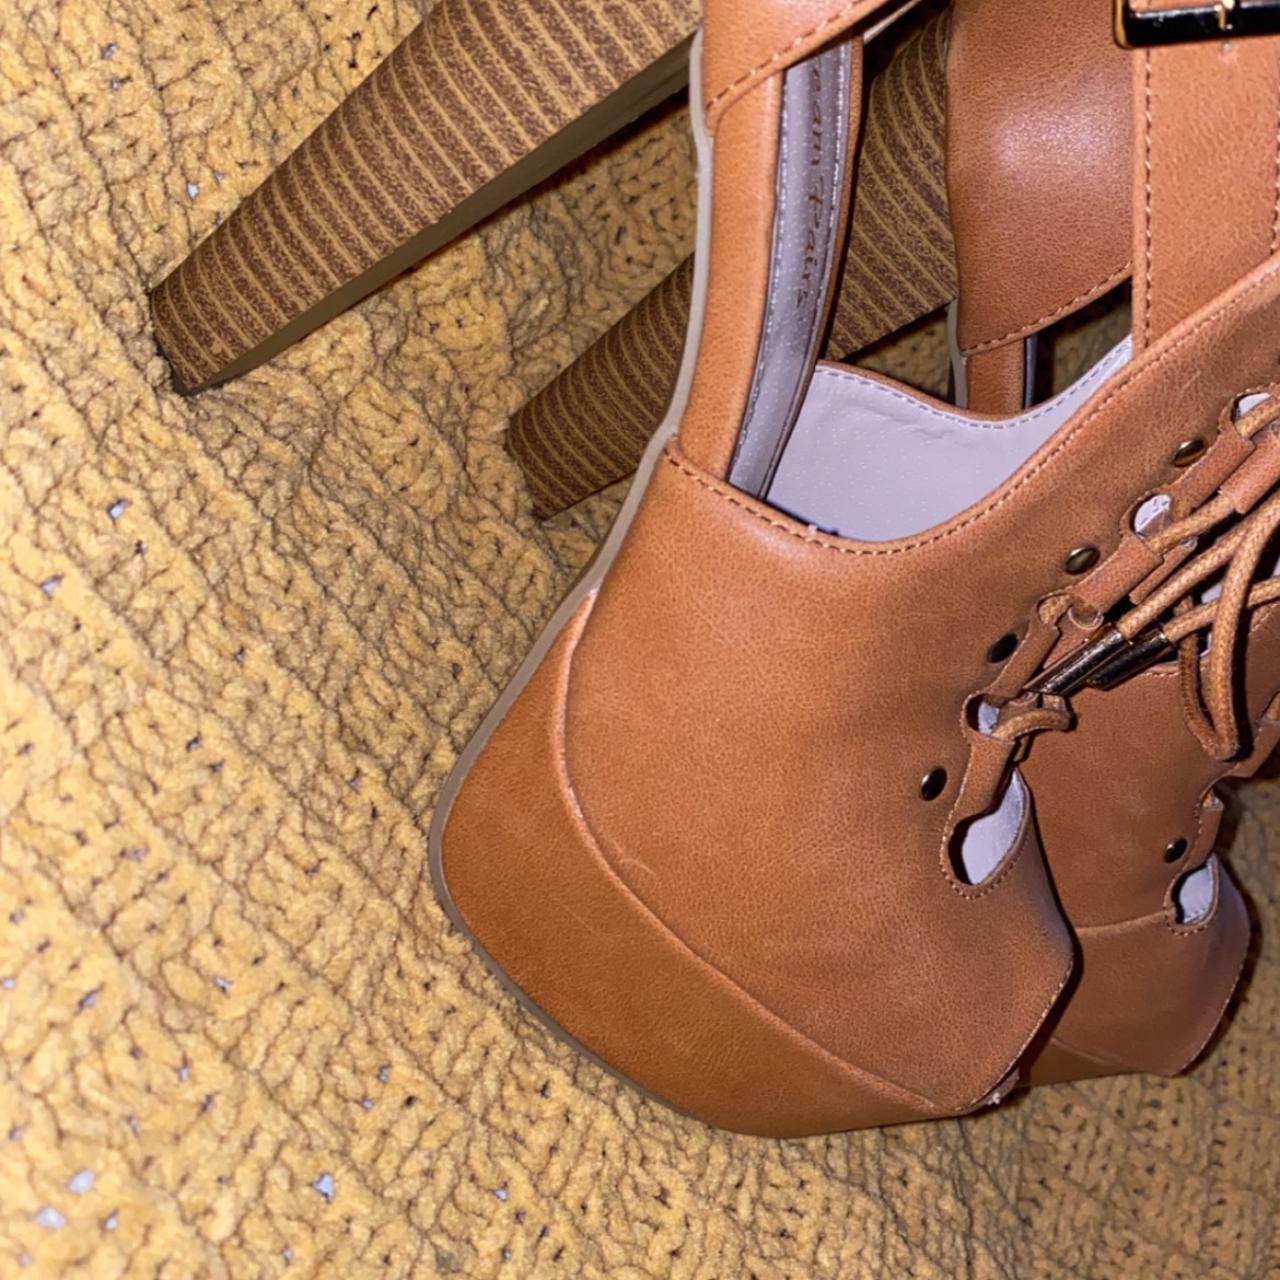 Product Image 1 - These are brand new heels